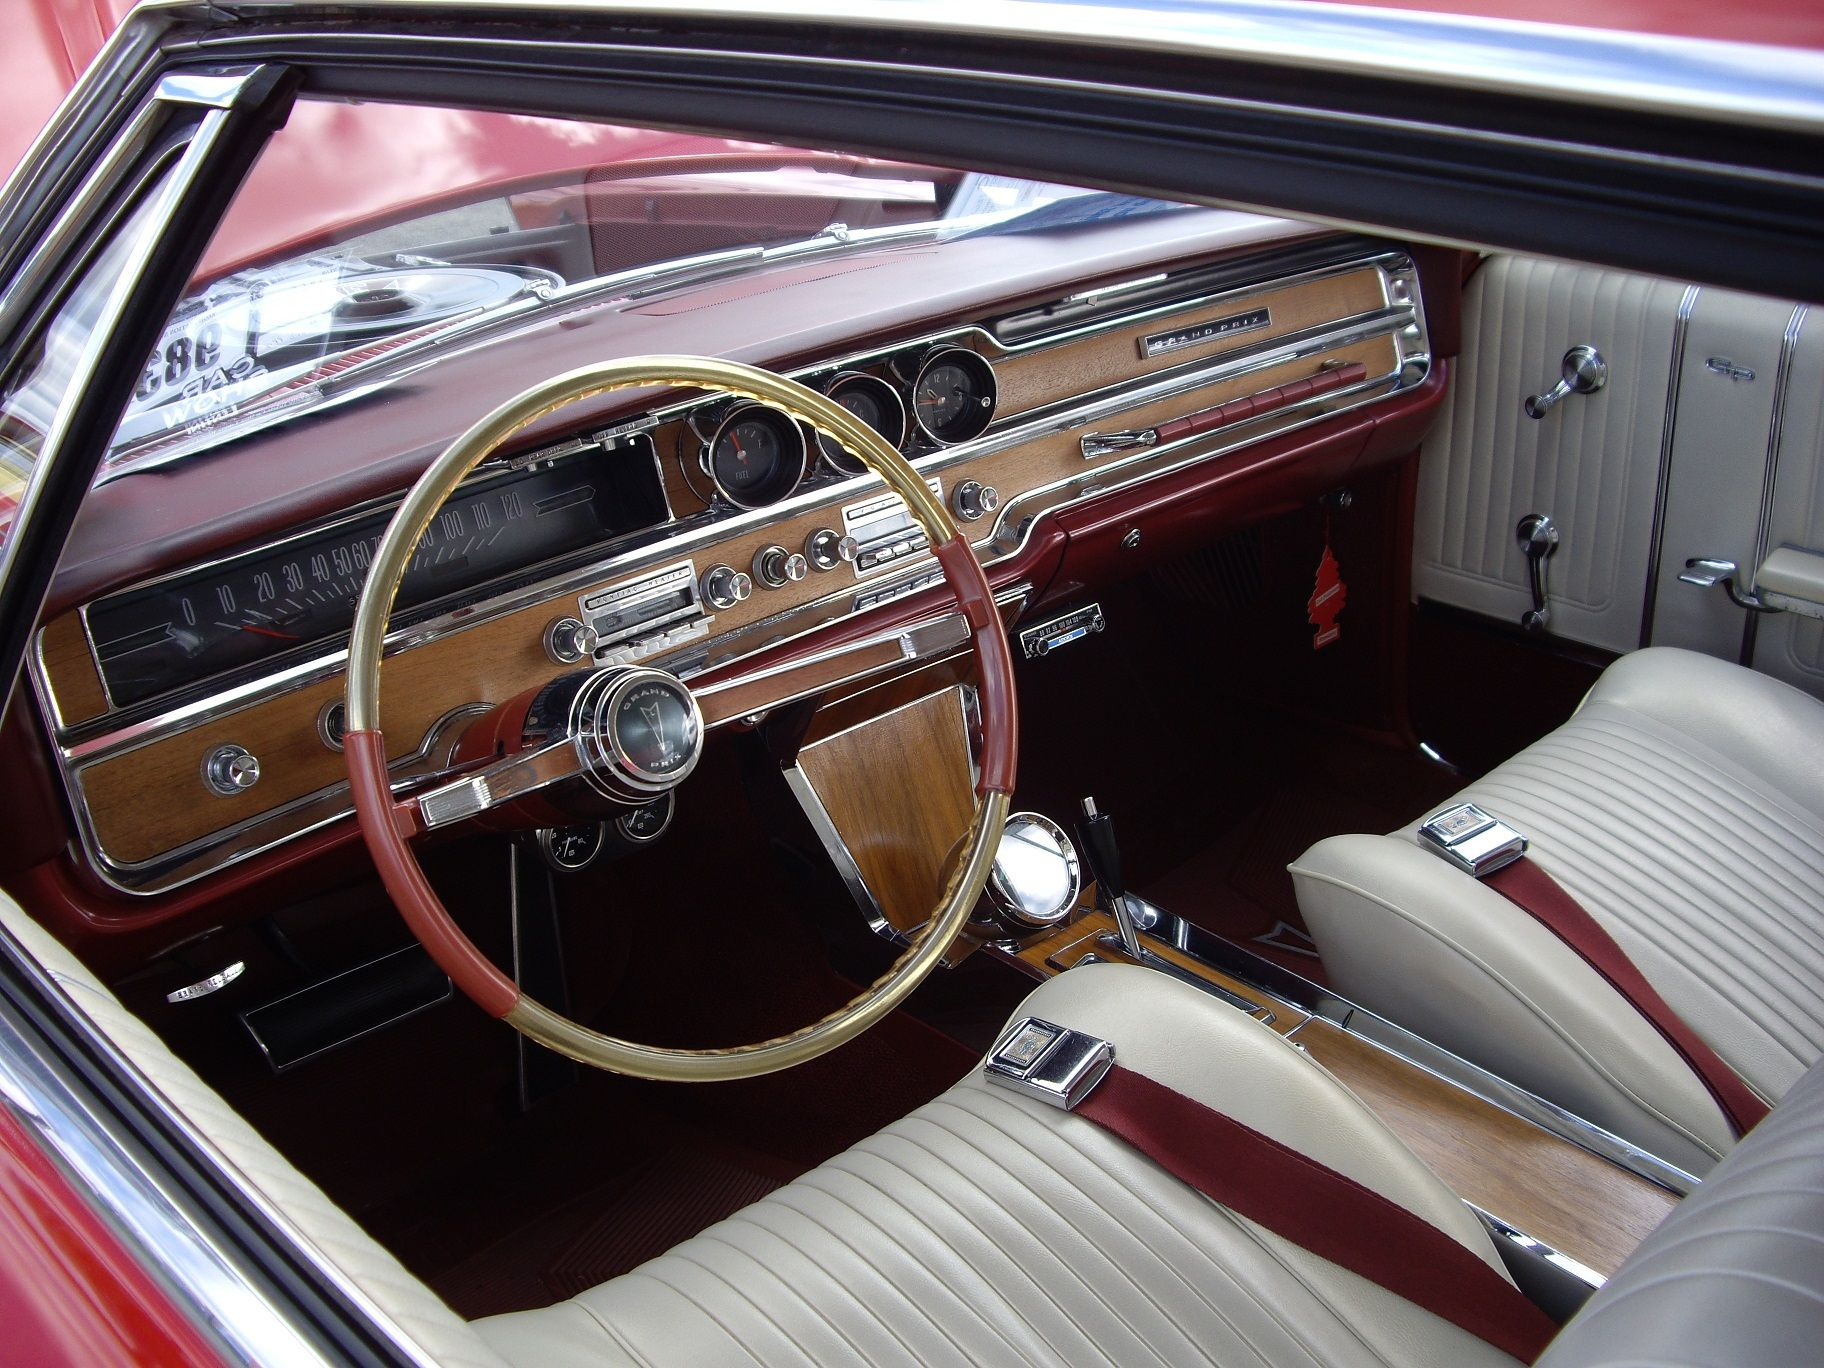 1965 Pontiac Grand Prix Interior Classic Car Interiors Pinterest Pontiac Grand Prix Car